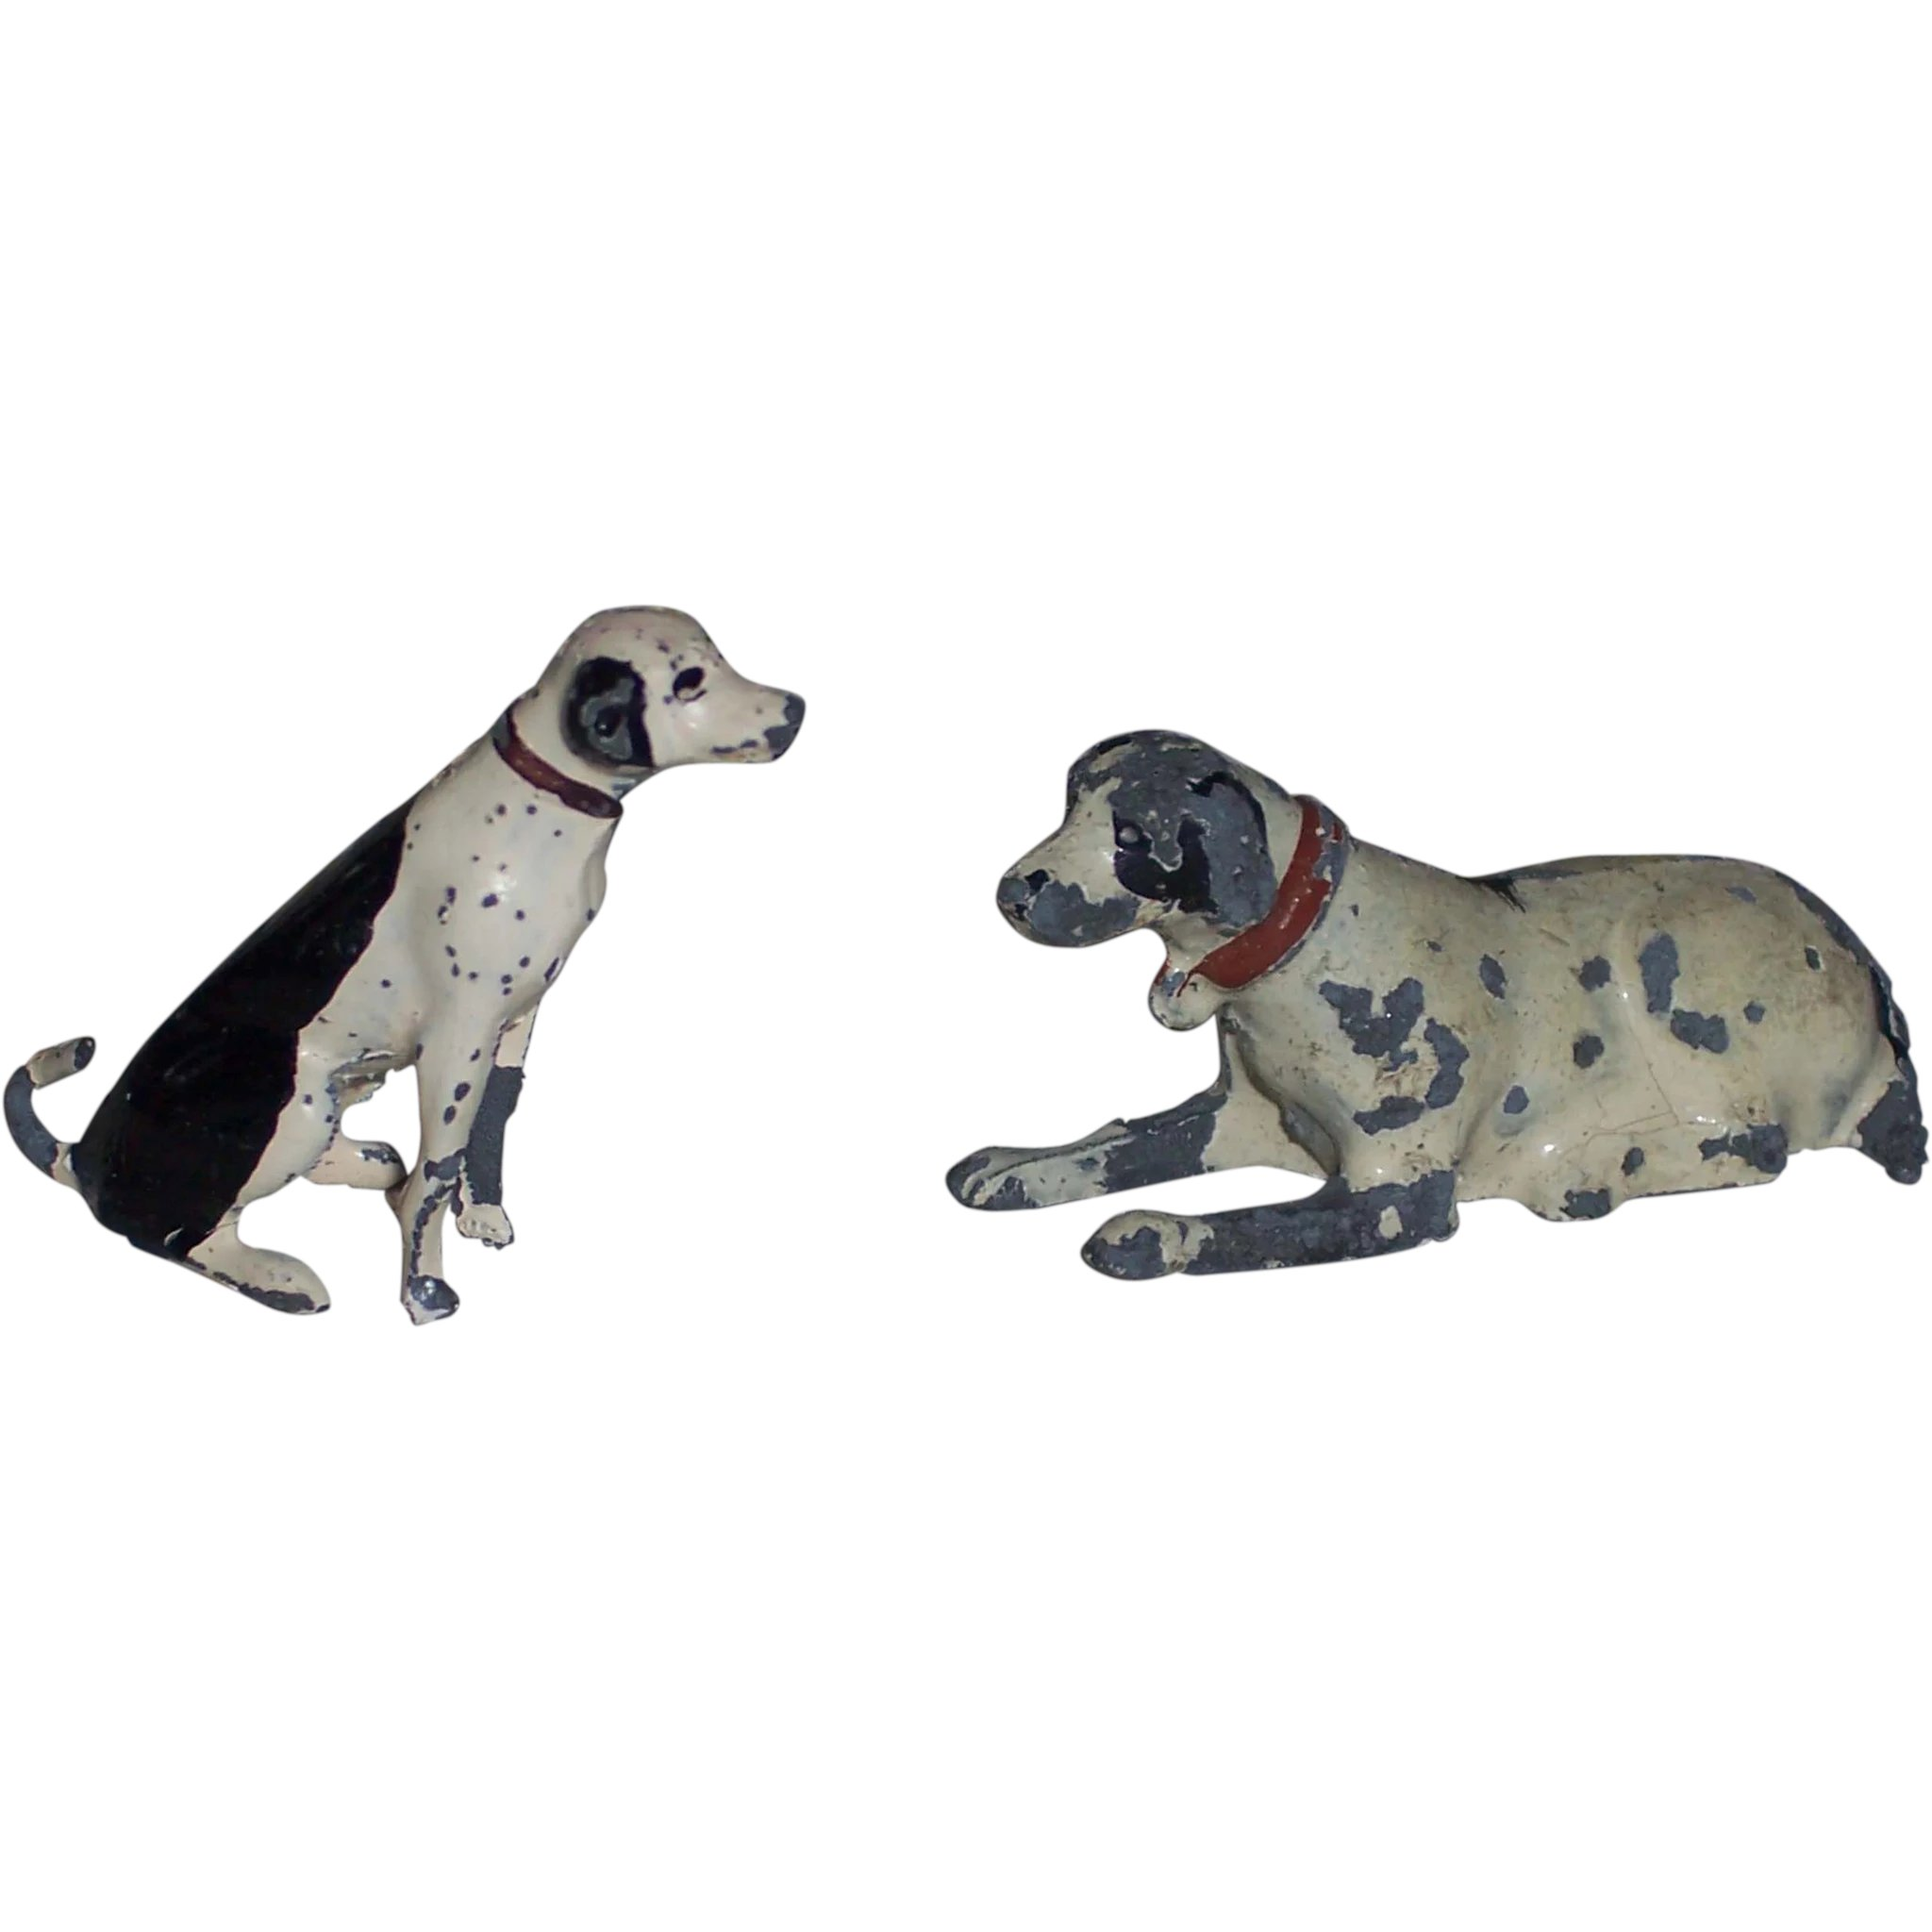 Cold Painted Lead Dollhouse Dogs